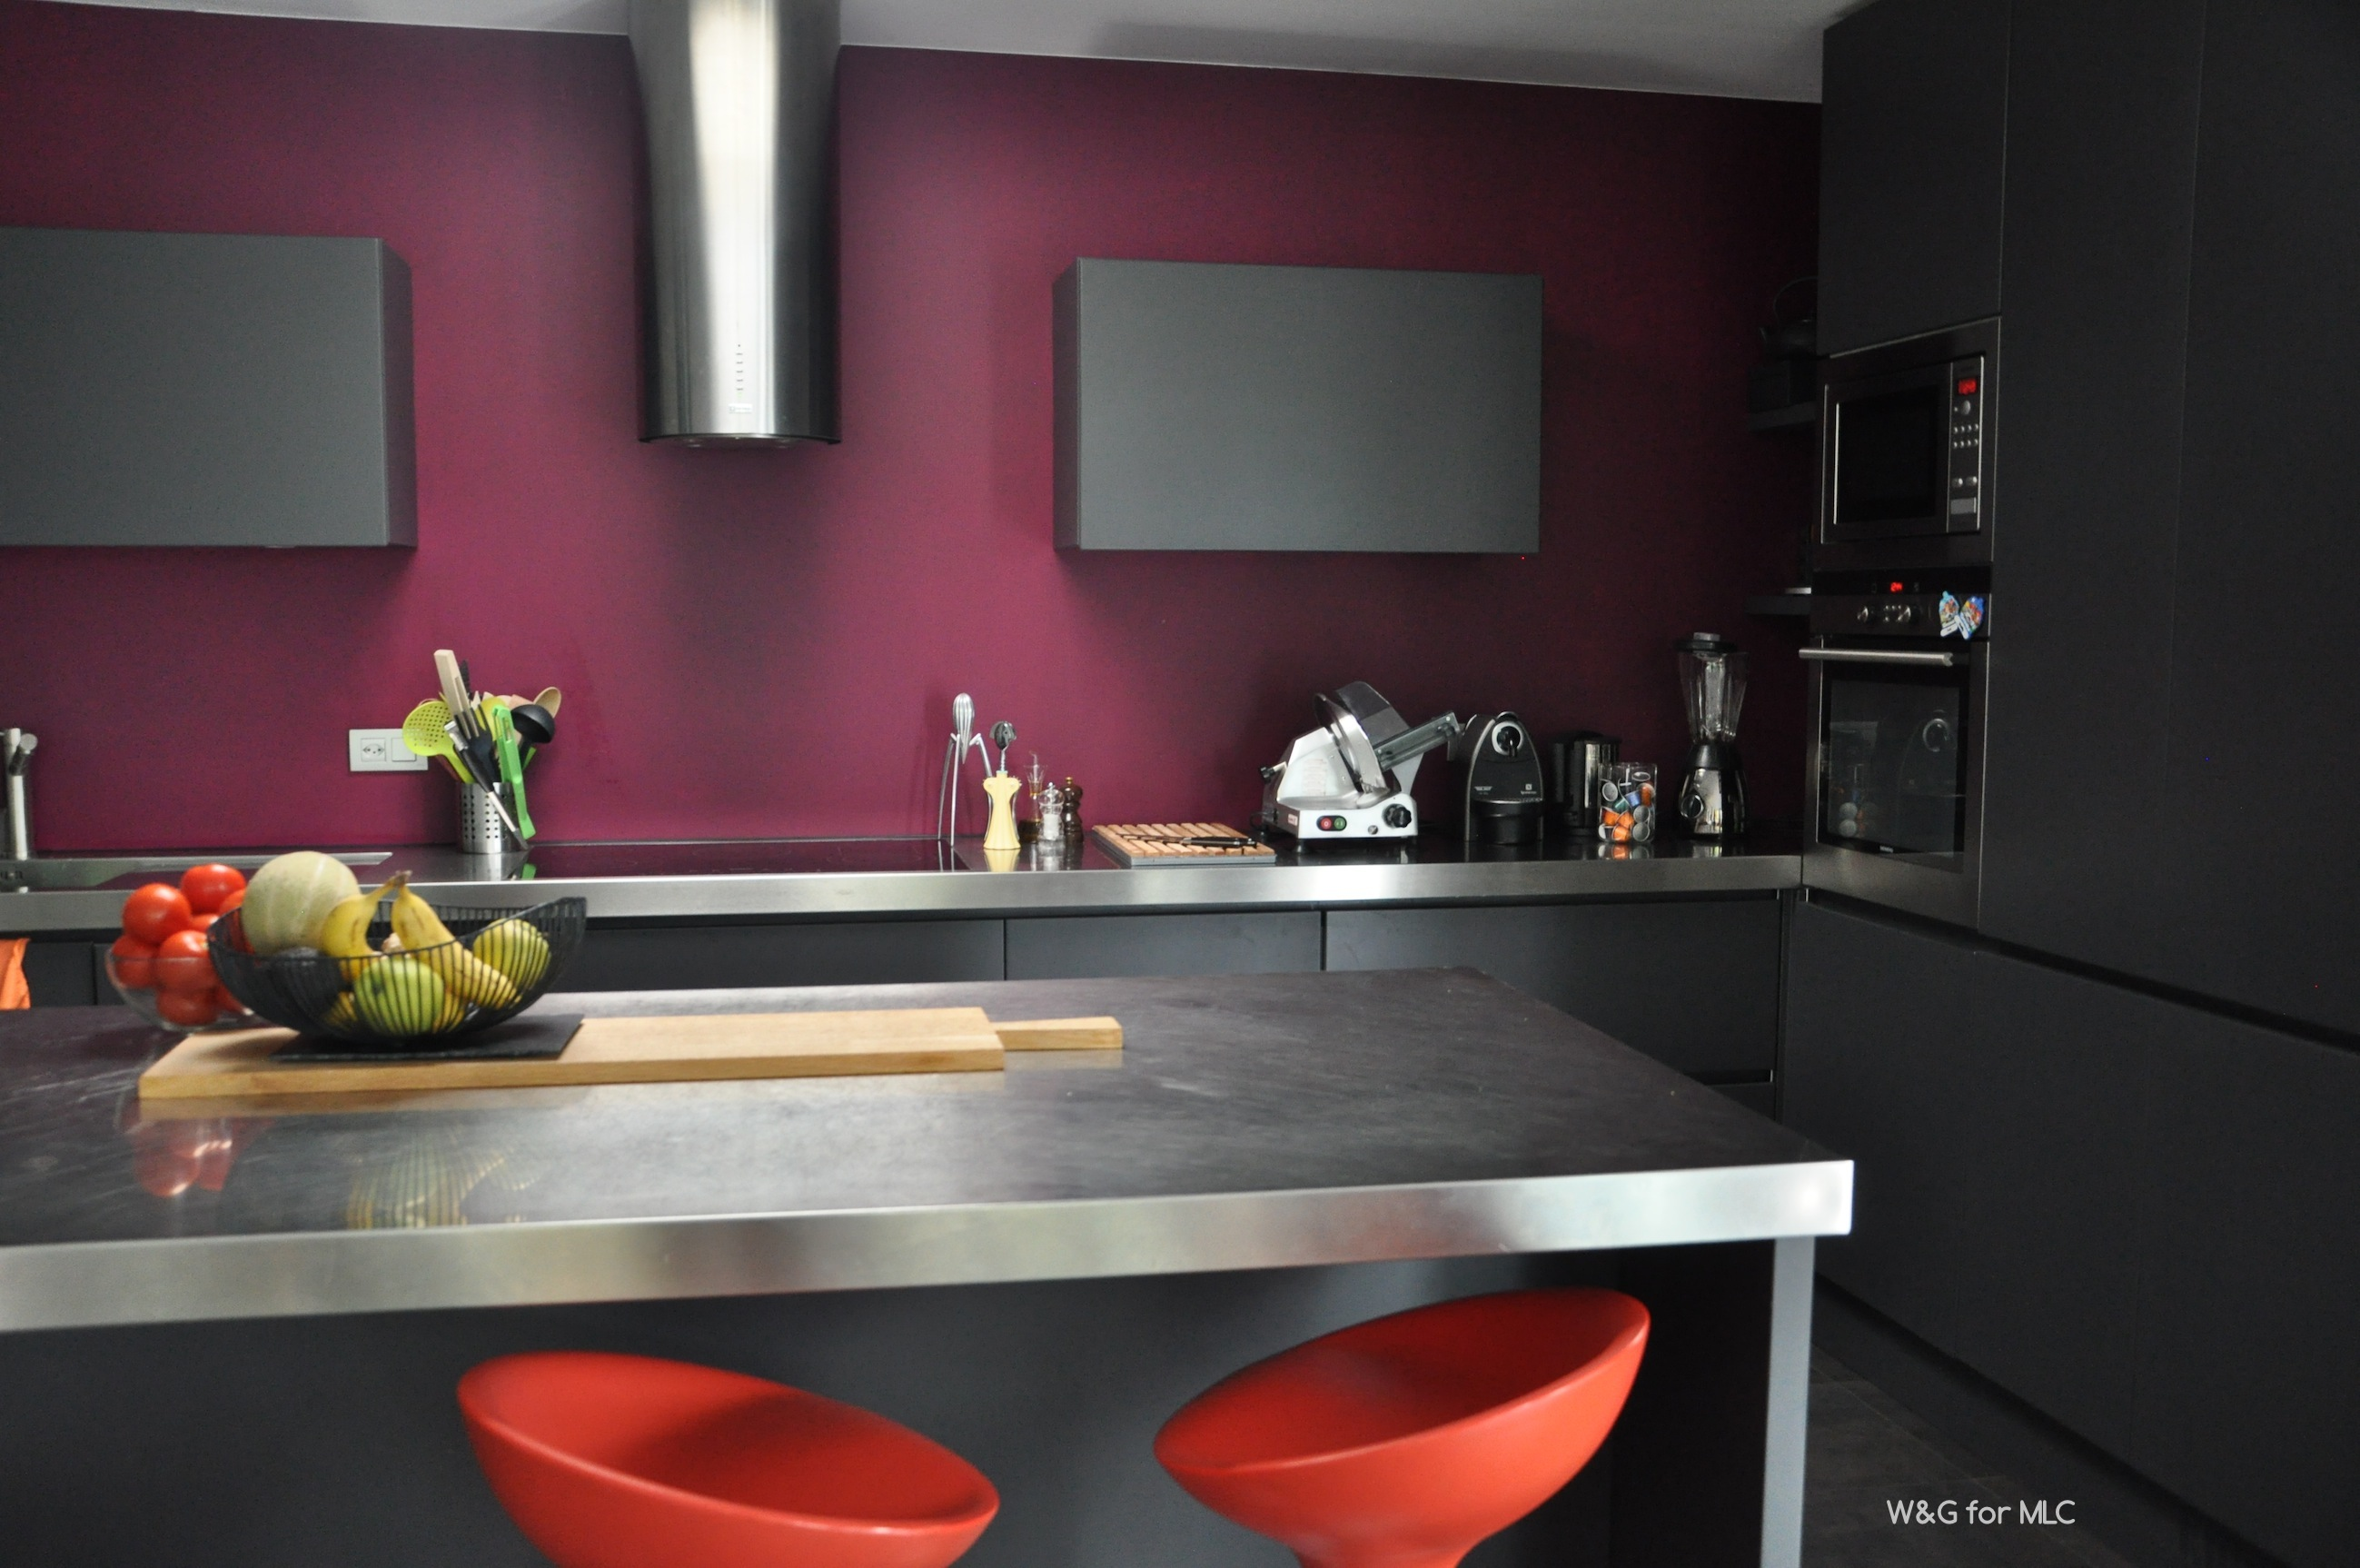 Cuisine anthracite sur fond fushia archives le blog d co for Photo deco interieur